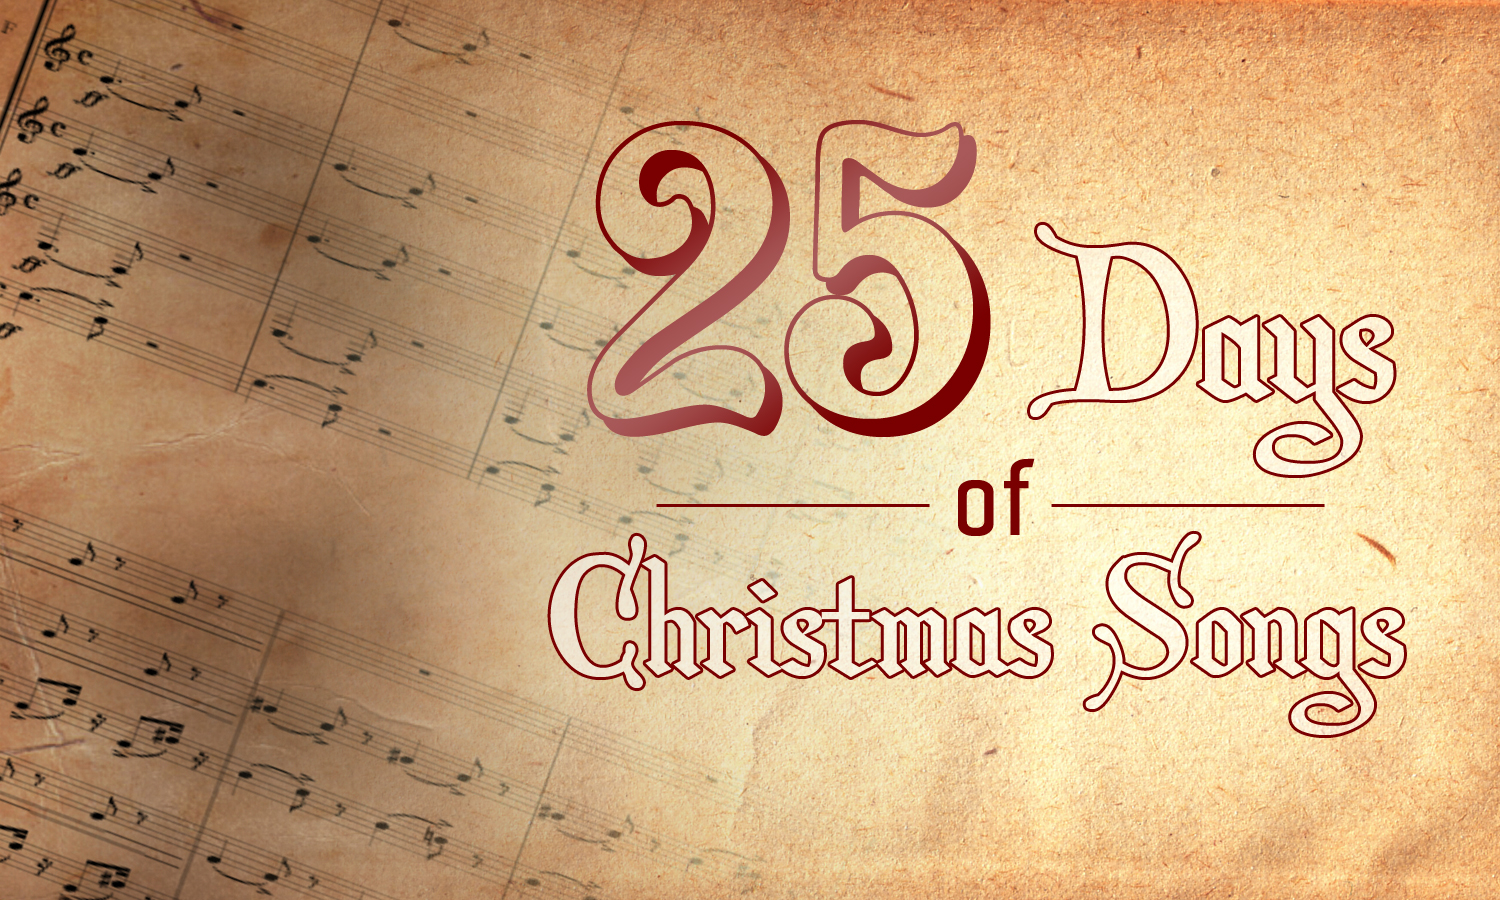 25 Days of Christmas Songs – Day 21